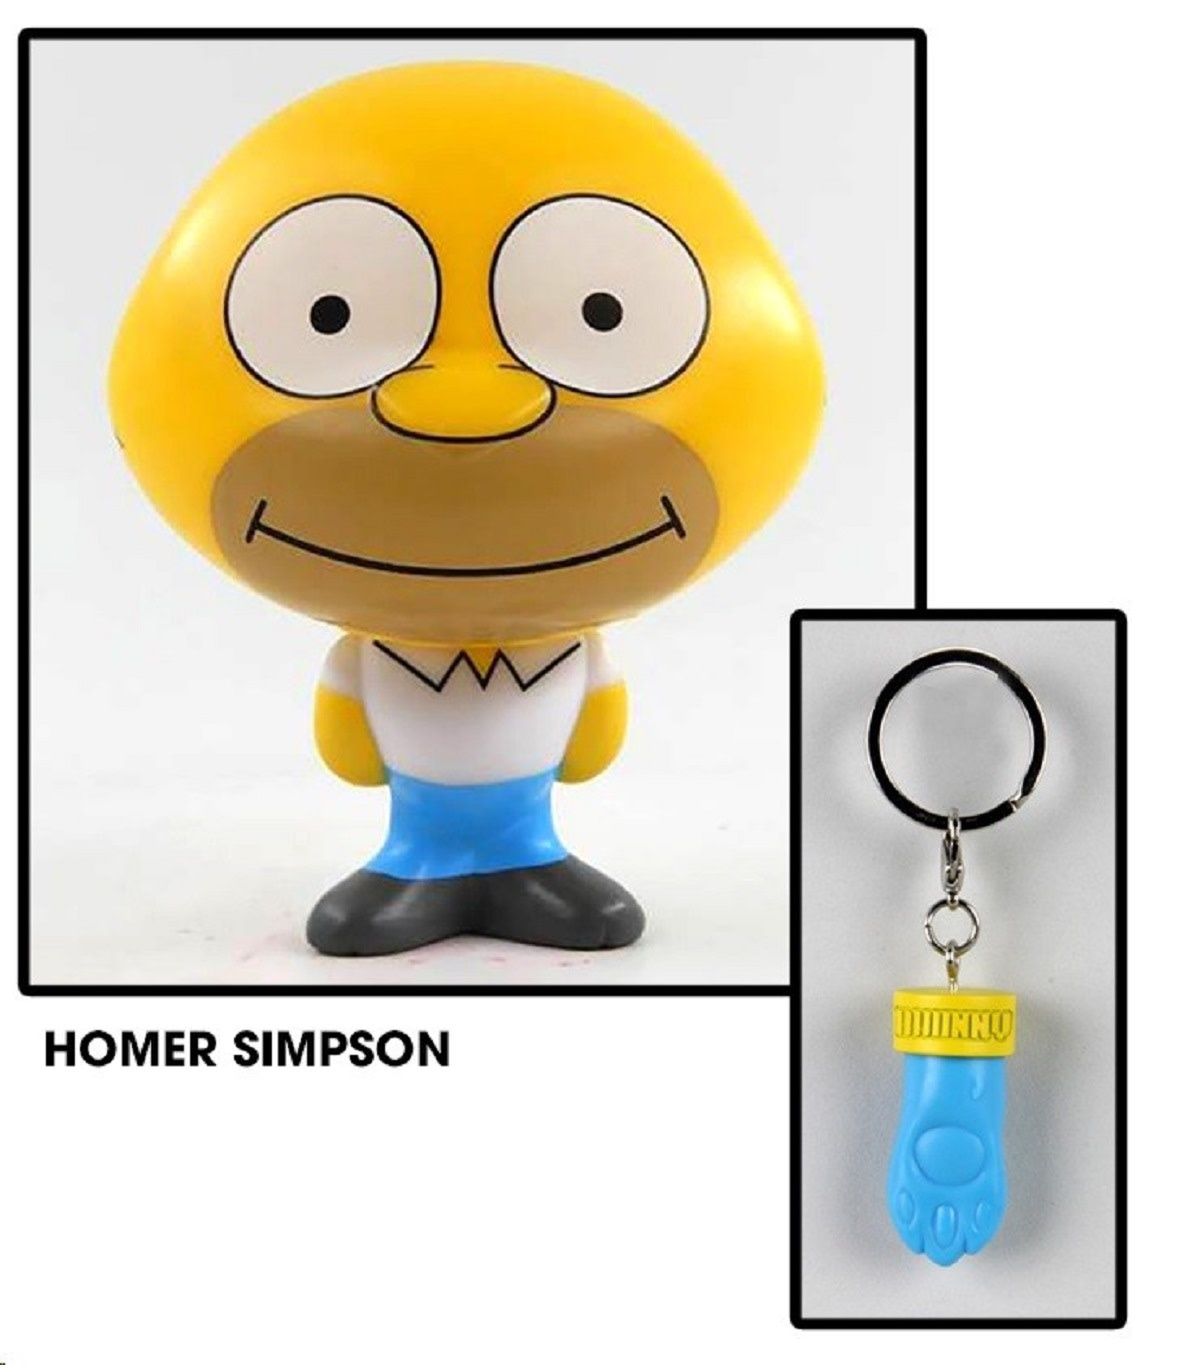 Kidrobot The Simpsons: Homer Simpson 4 inch Bhunny